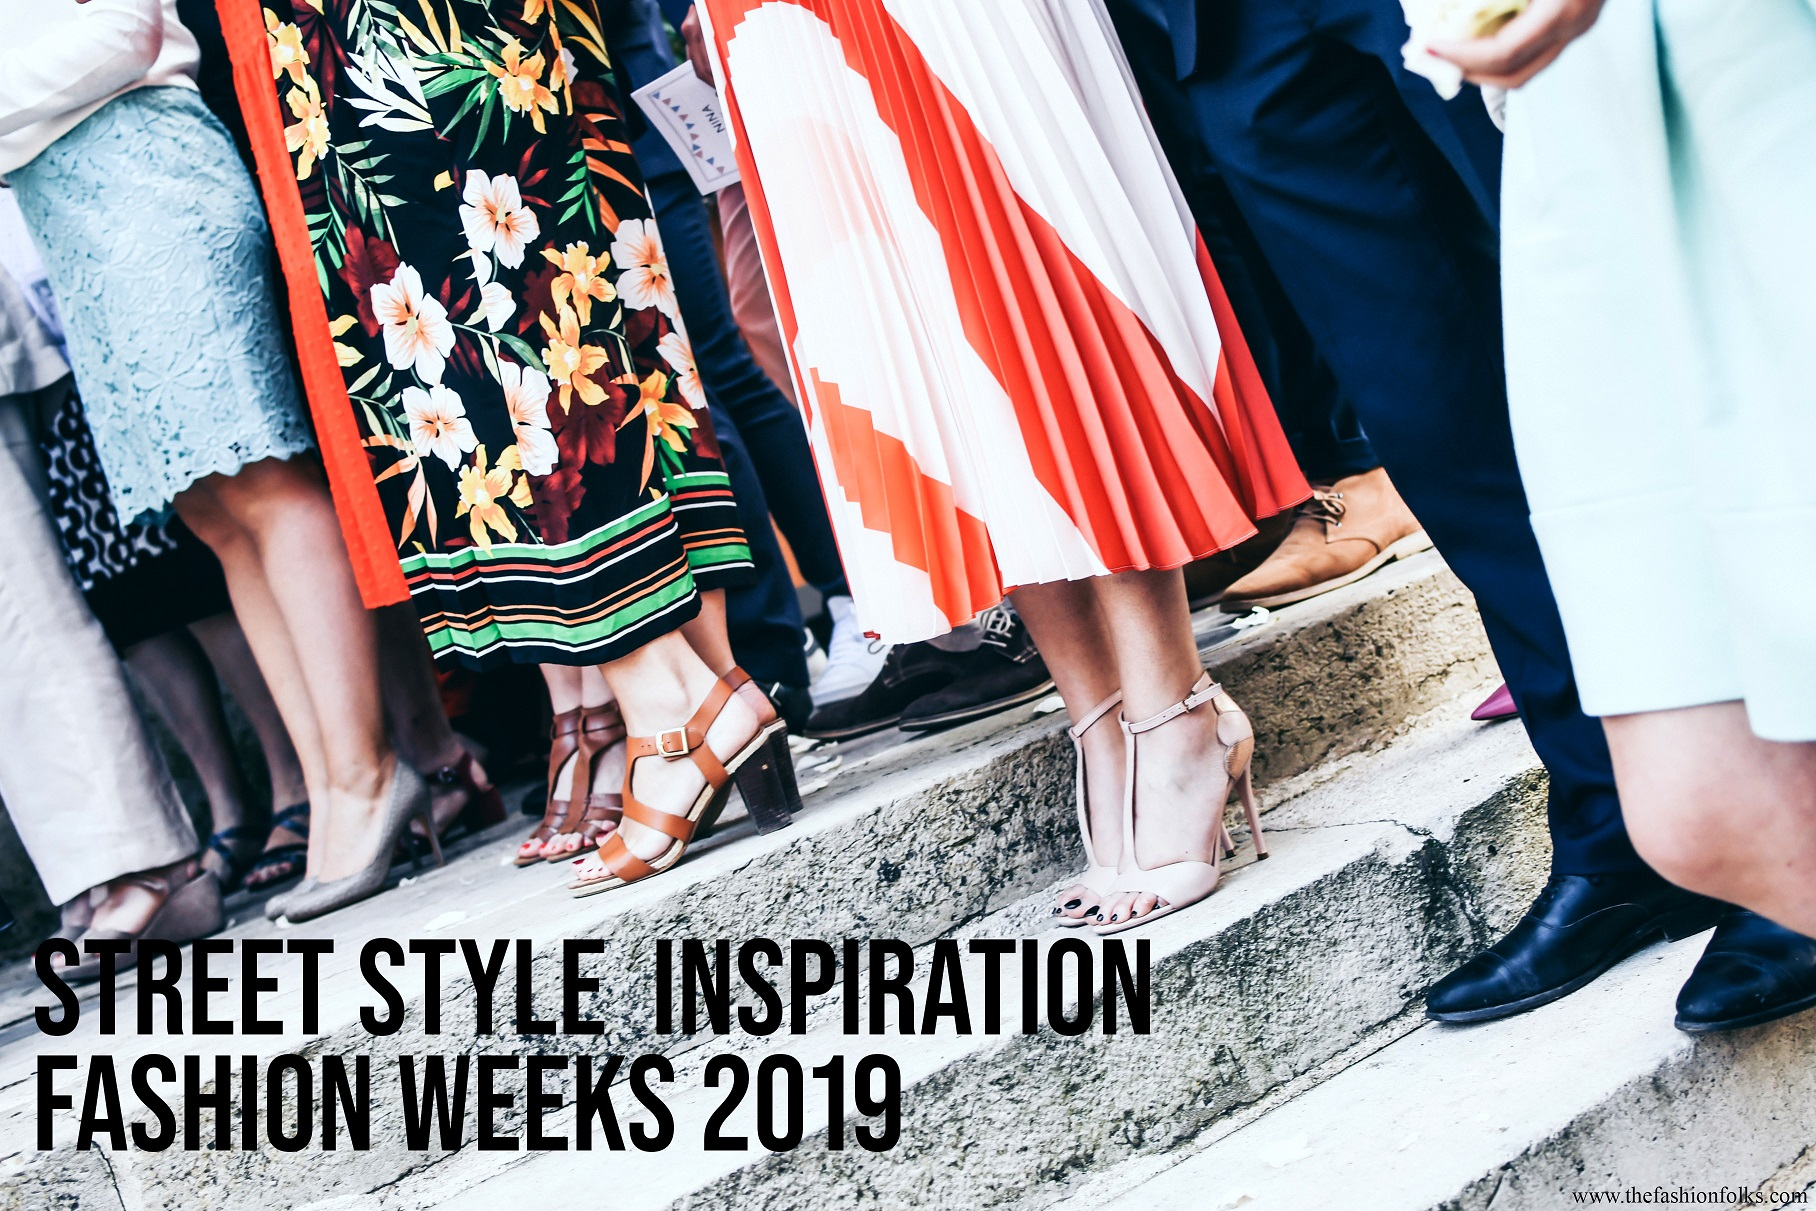 Street Style Fashion Weeks February 2019 – Part 2